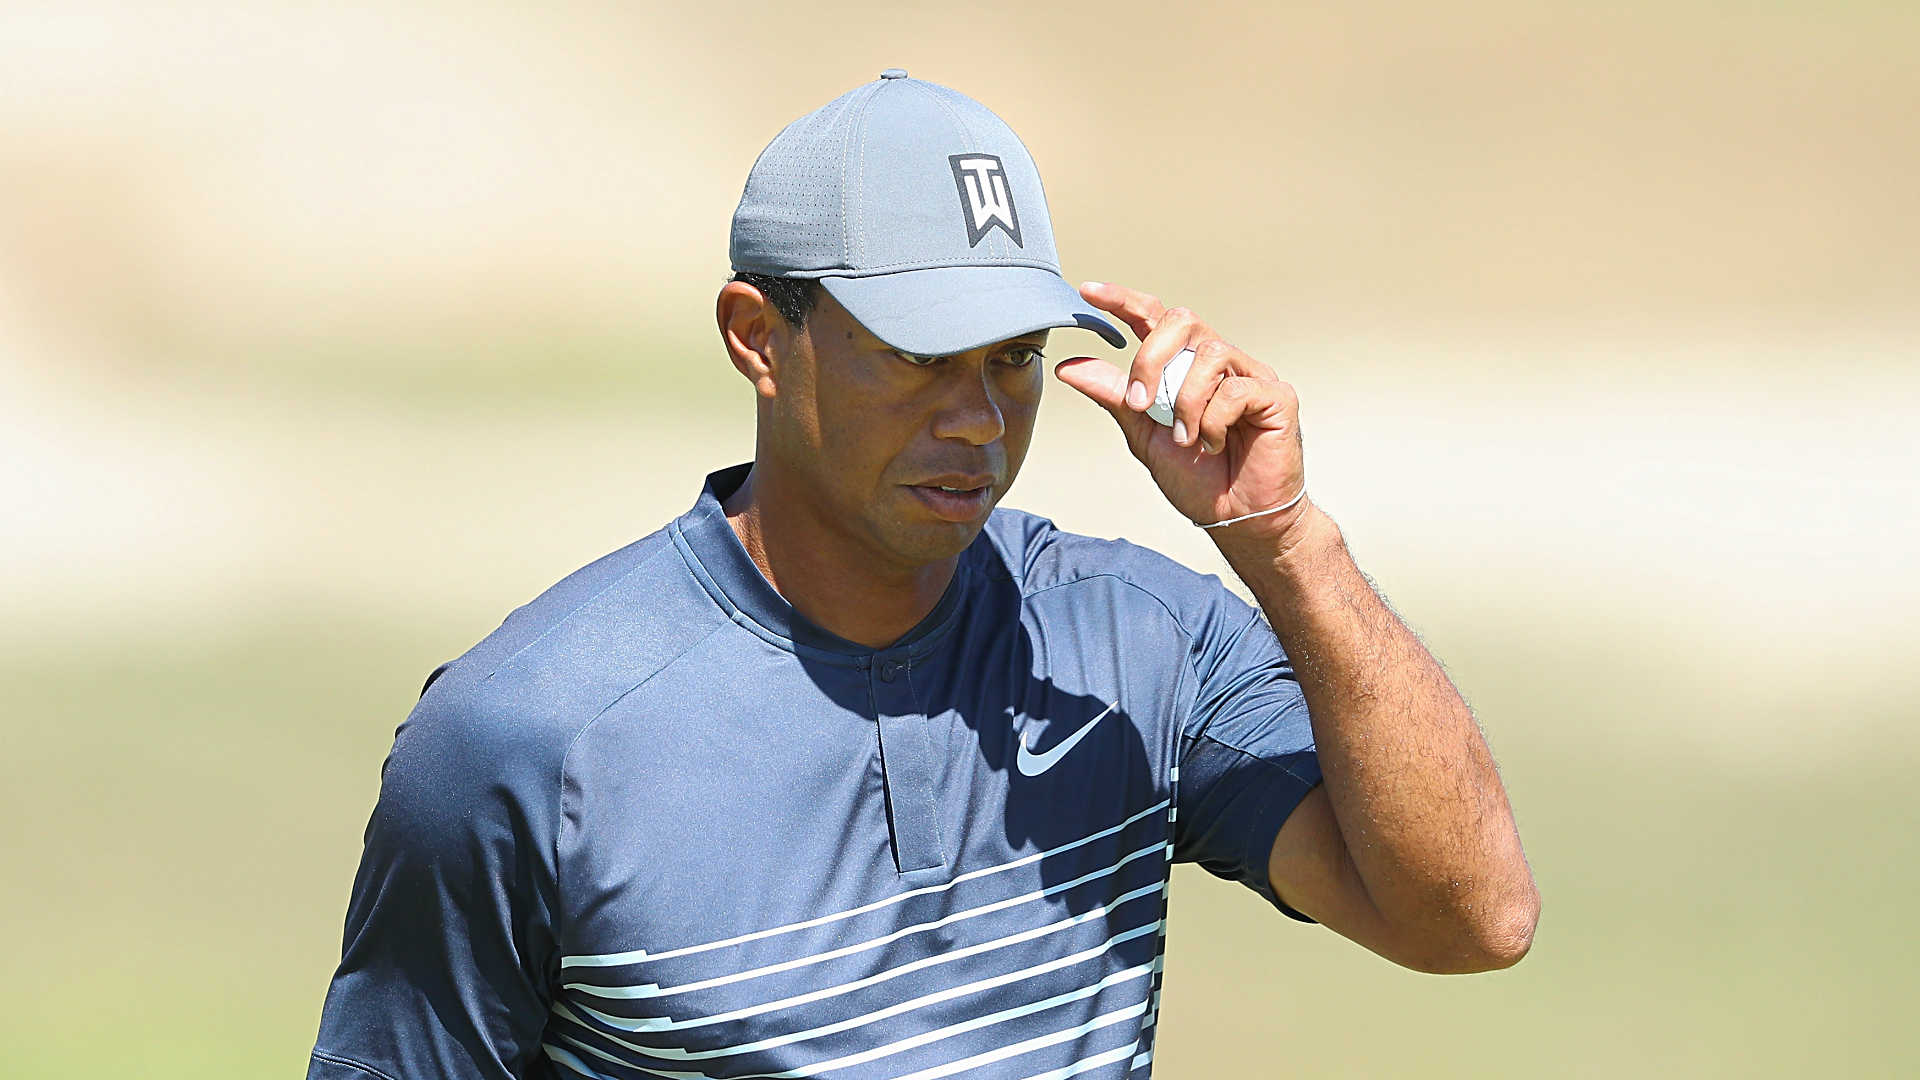 tiger woods score  round 1 updates  leaderboard from u s